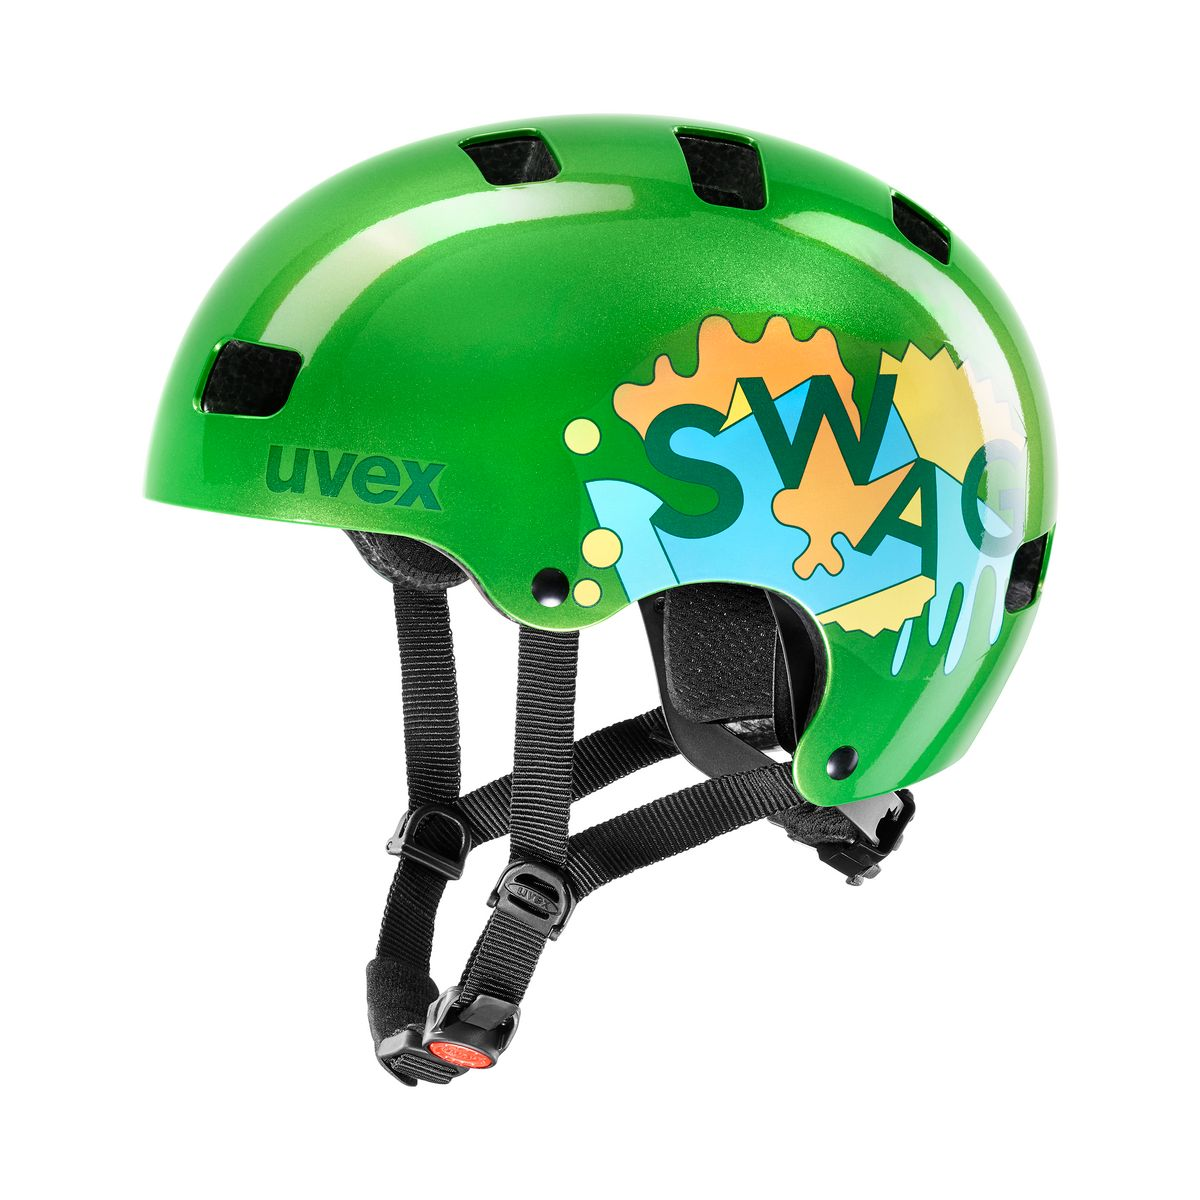 KID 3 kids' helmet